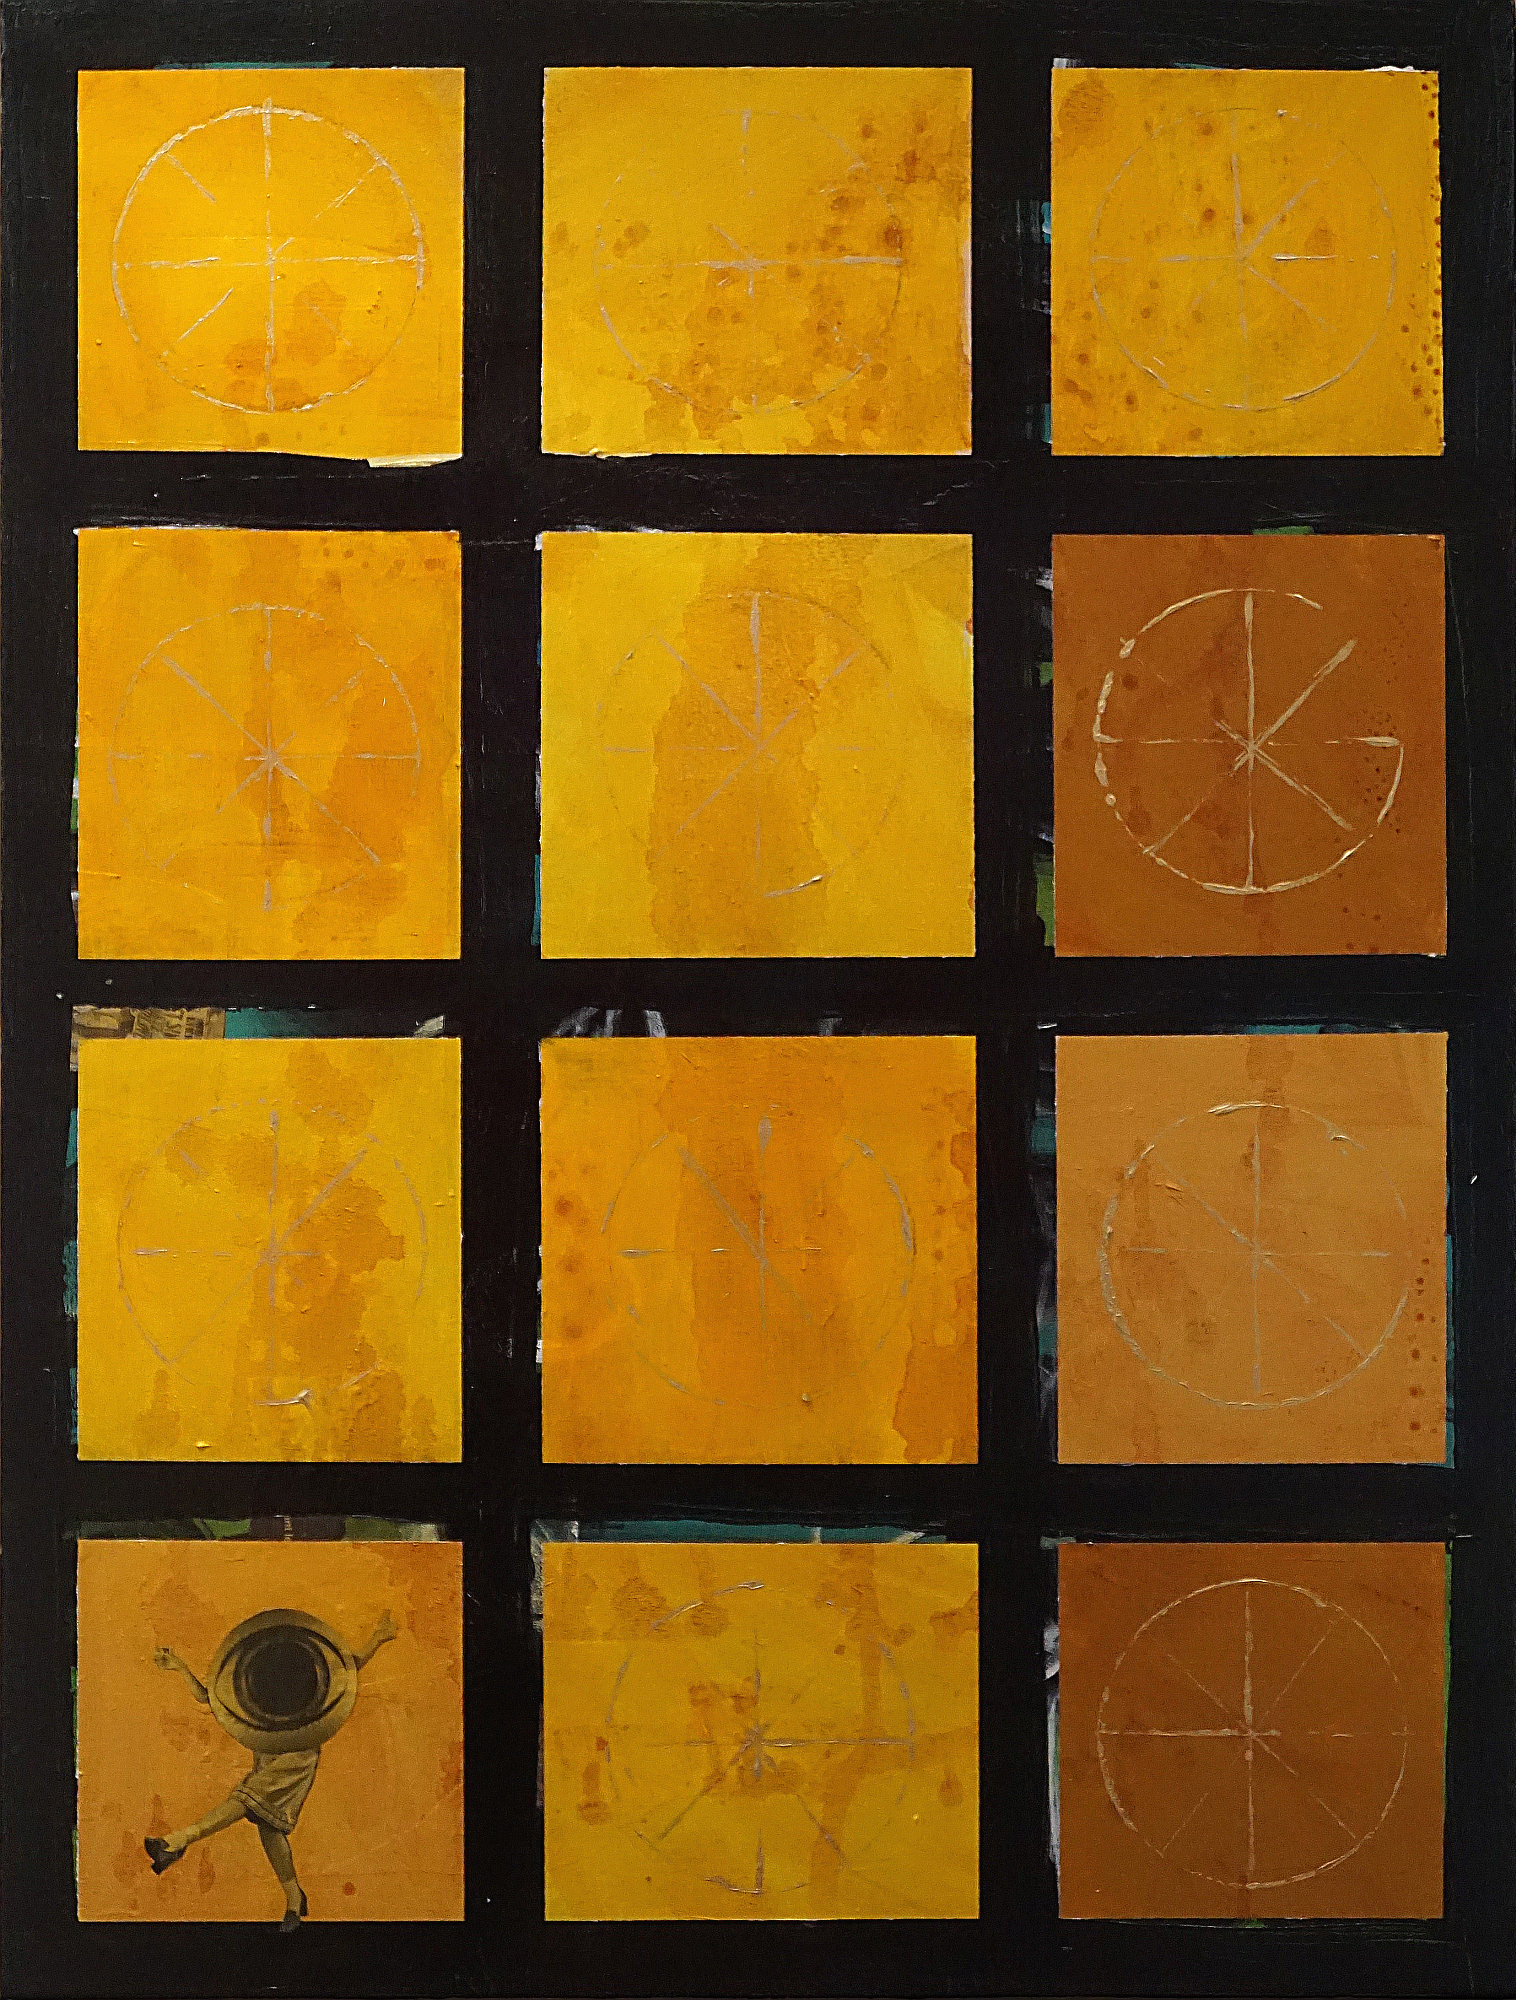 """""""Making Peace With Yellow,"""" 2016 by Terri Maxfield Lipp"""